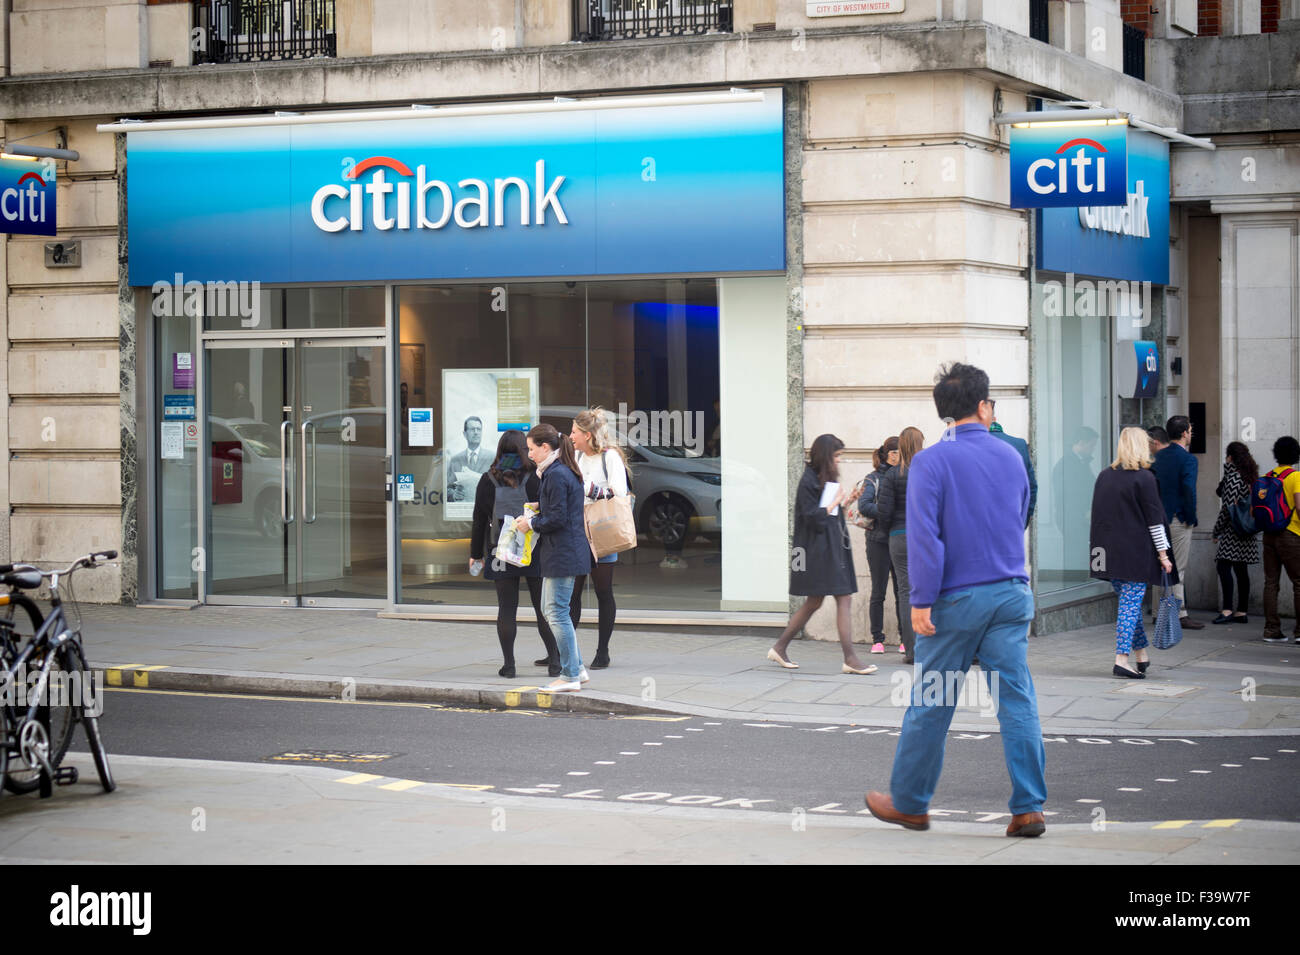 Branch of Citibank in the centre of London UK - Stock Image